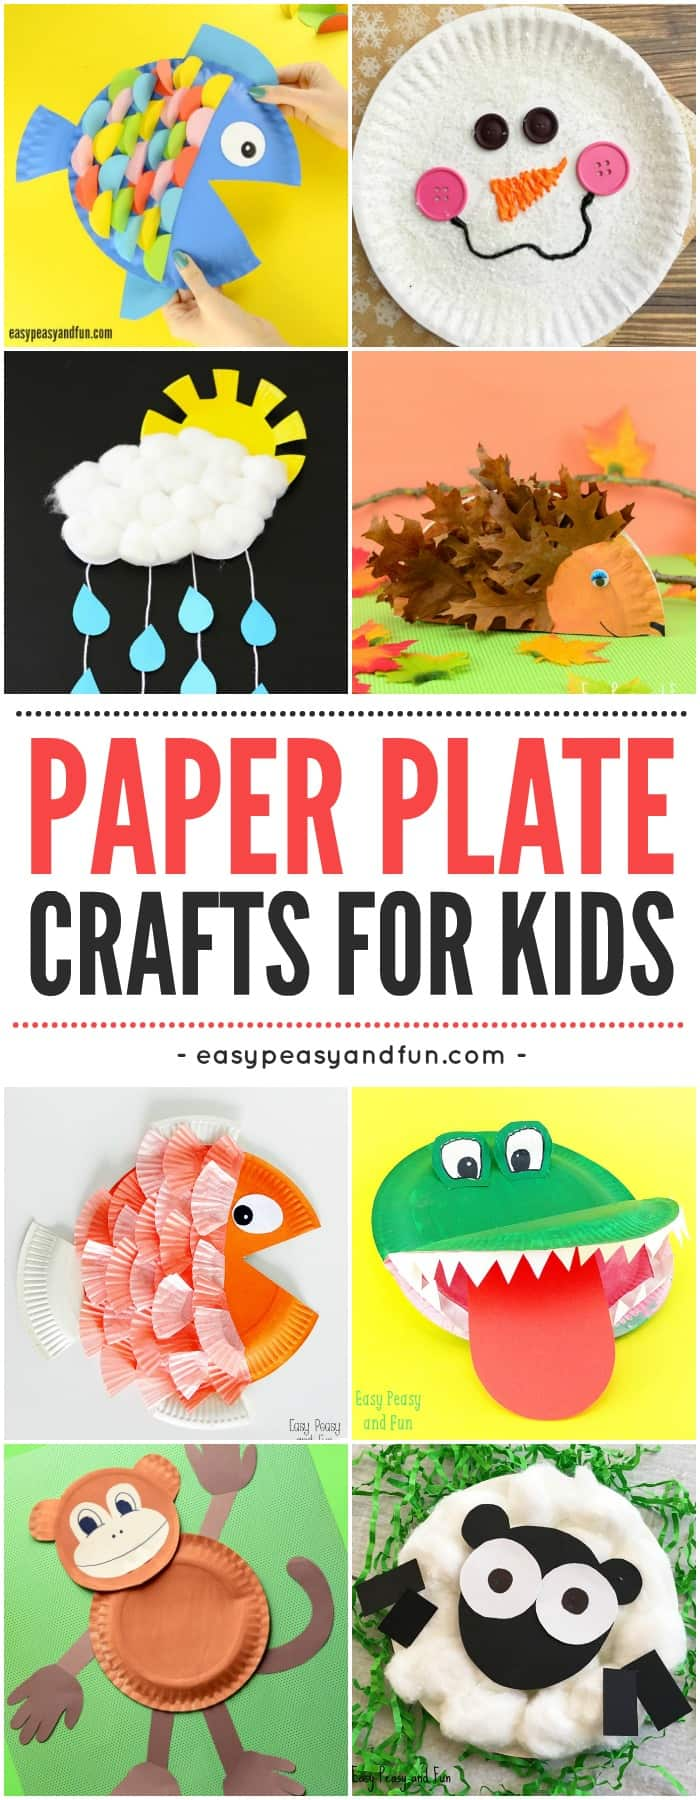 Fun paper plate crafts for kids. #craftsforkids #paperplatecrafts #paperplatecraftideasforkids